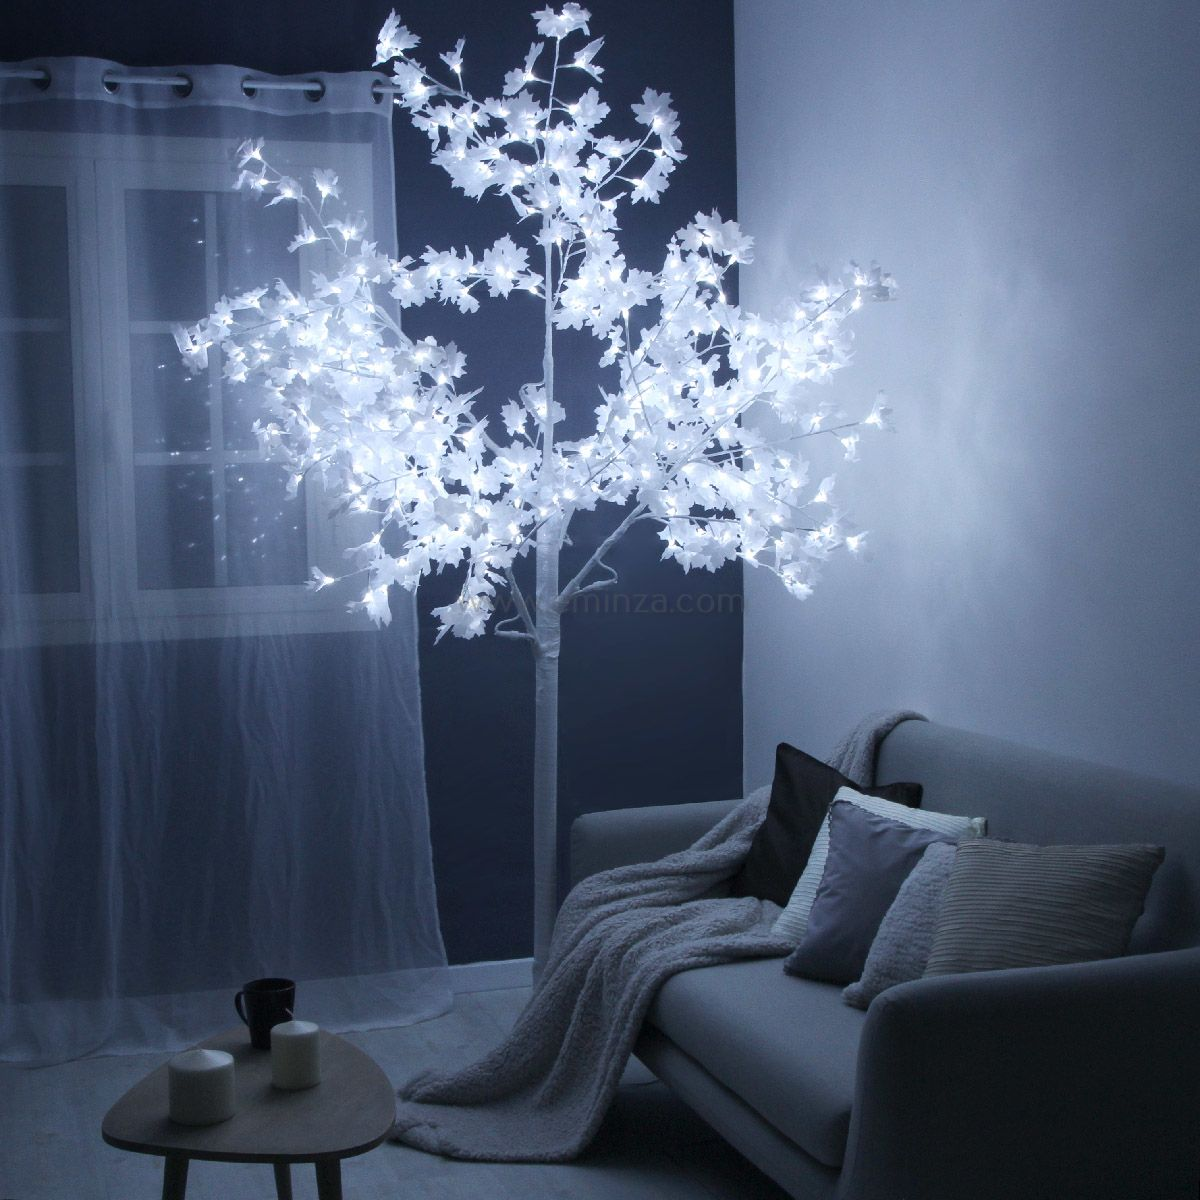 Erable Lumineux Thal S H250 Cm Blanc Froid Sapin Arbre Eminza # Image Lumineux